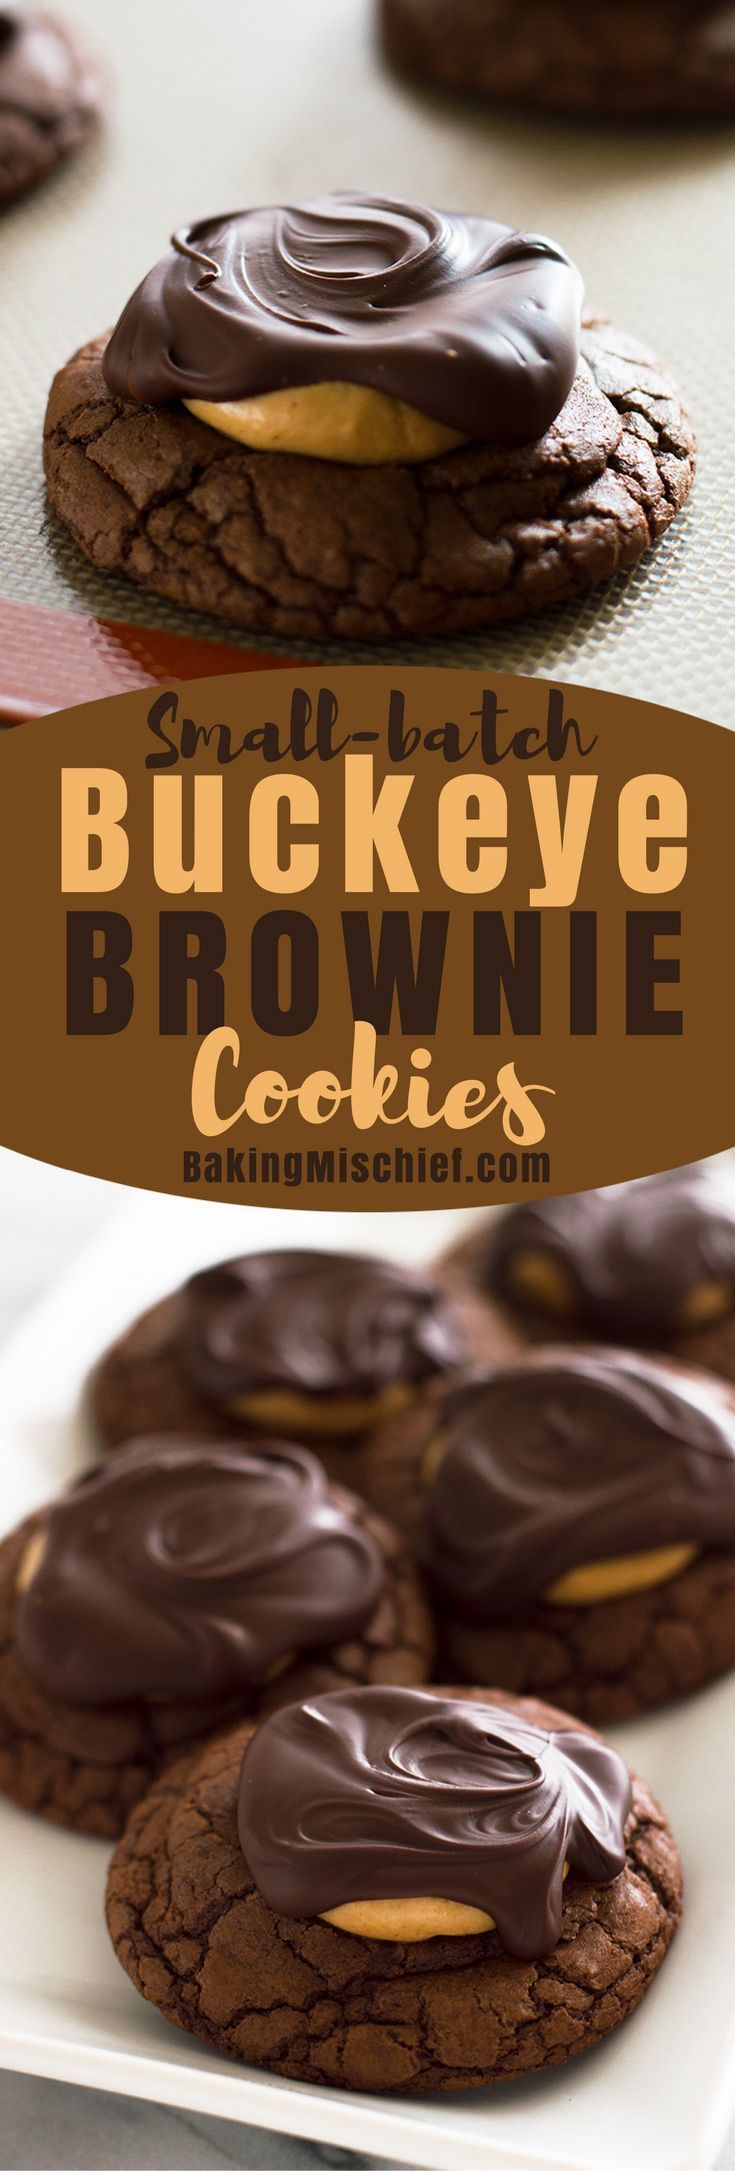 This recipe for six rich and amazing Buckeye Brownie Cookies starts with a fudgy chocolate cookie base, gets a sweet peanut butter center, and is topped with melted chocolate. From http://BakingMischief.com